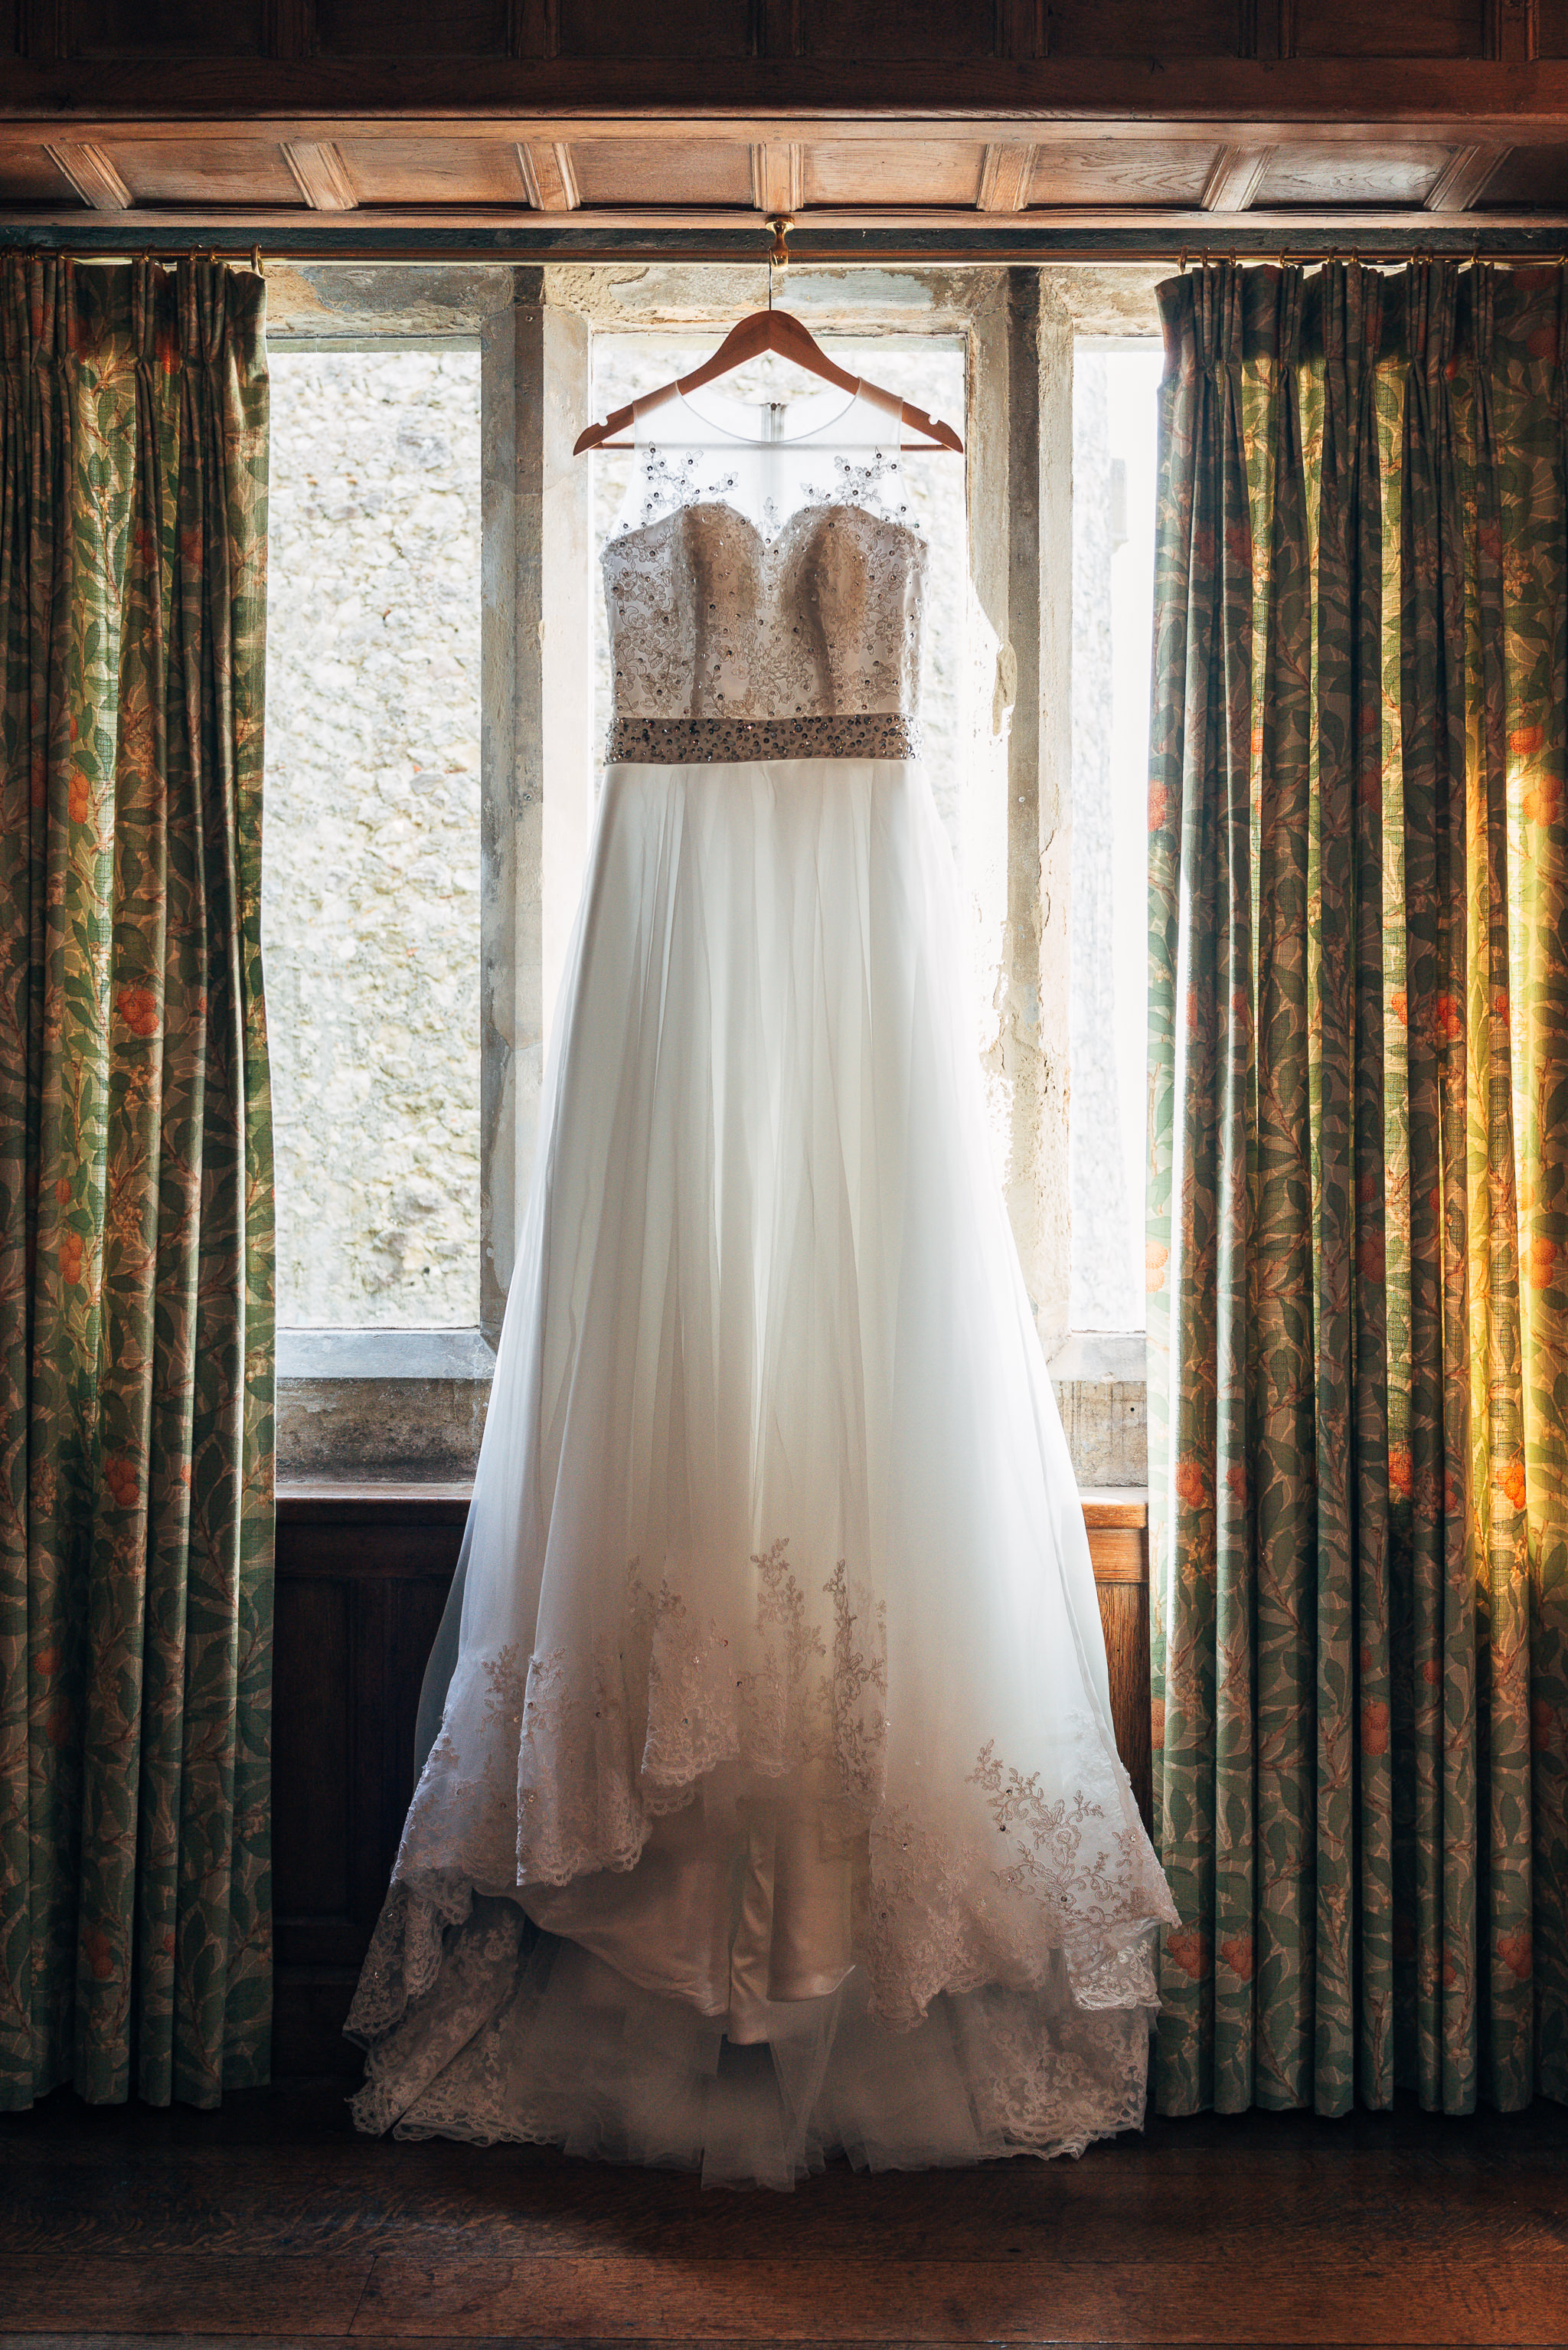 Lympne Castle Wedding Dress